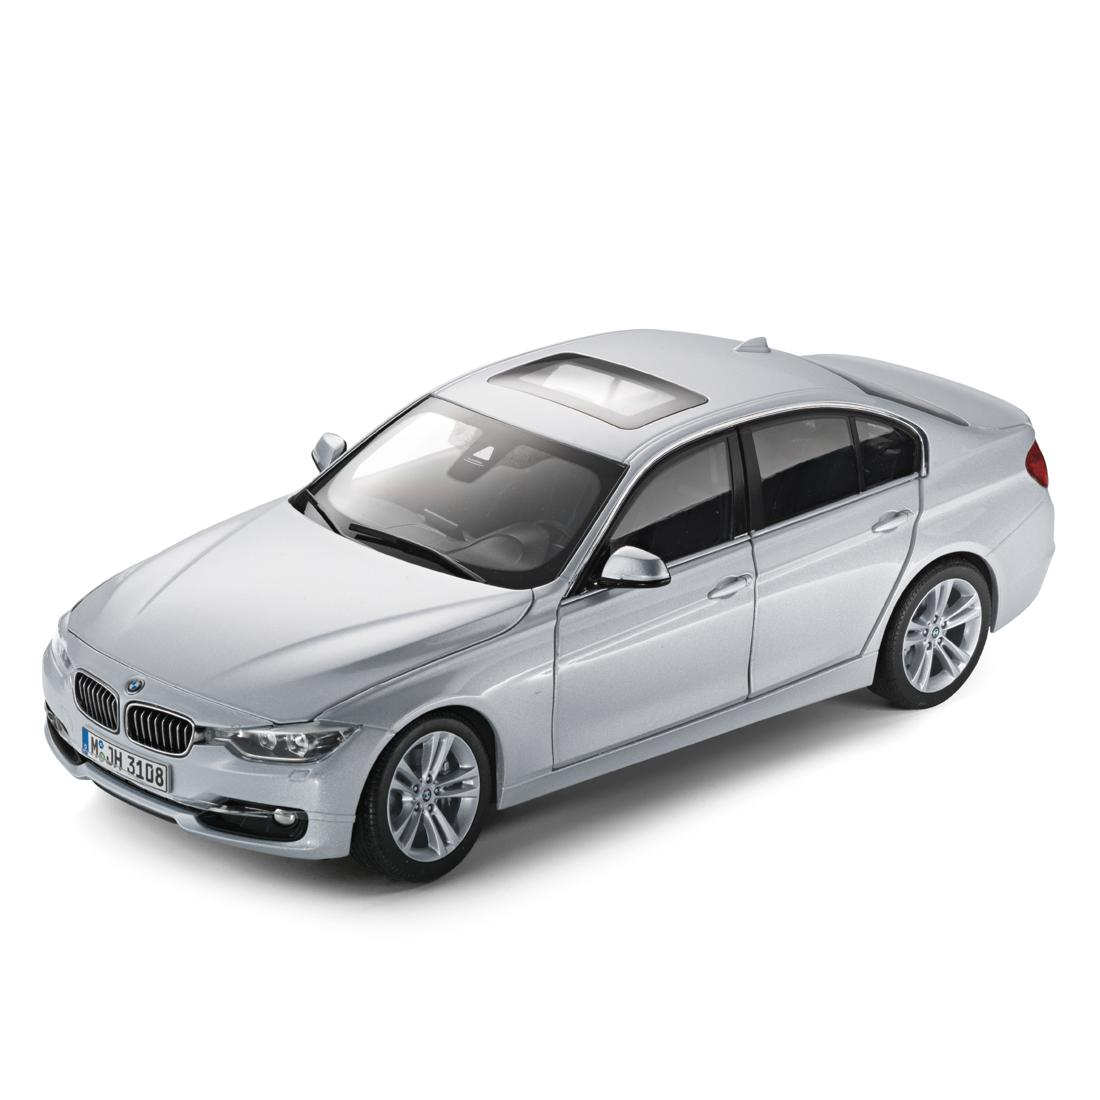 BMW 3 Series Saloon (F30)